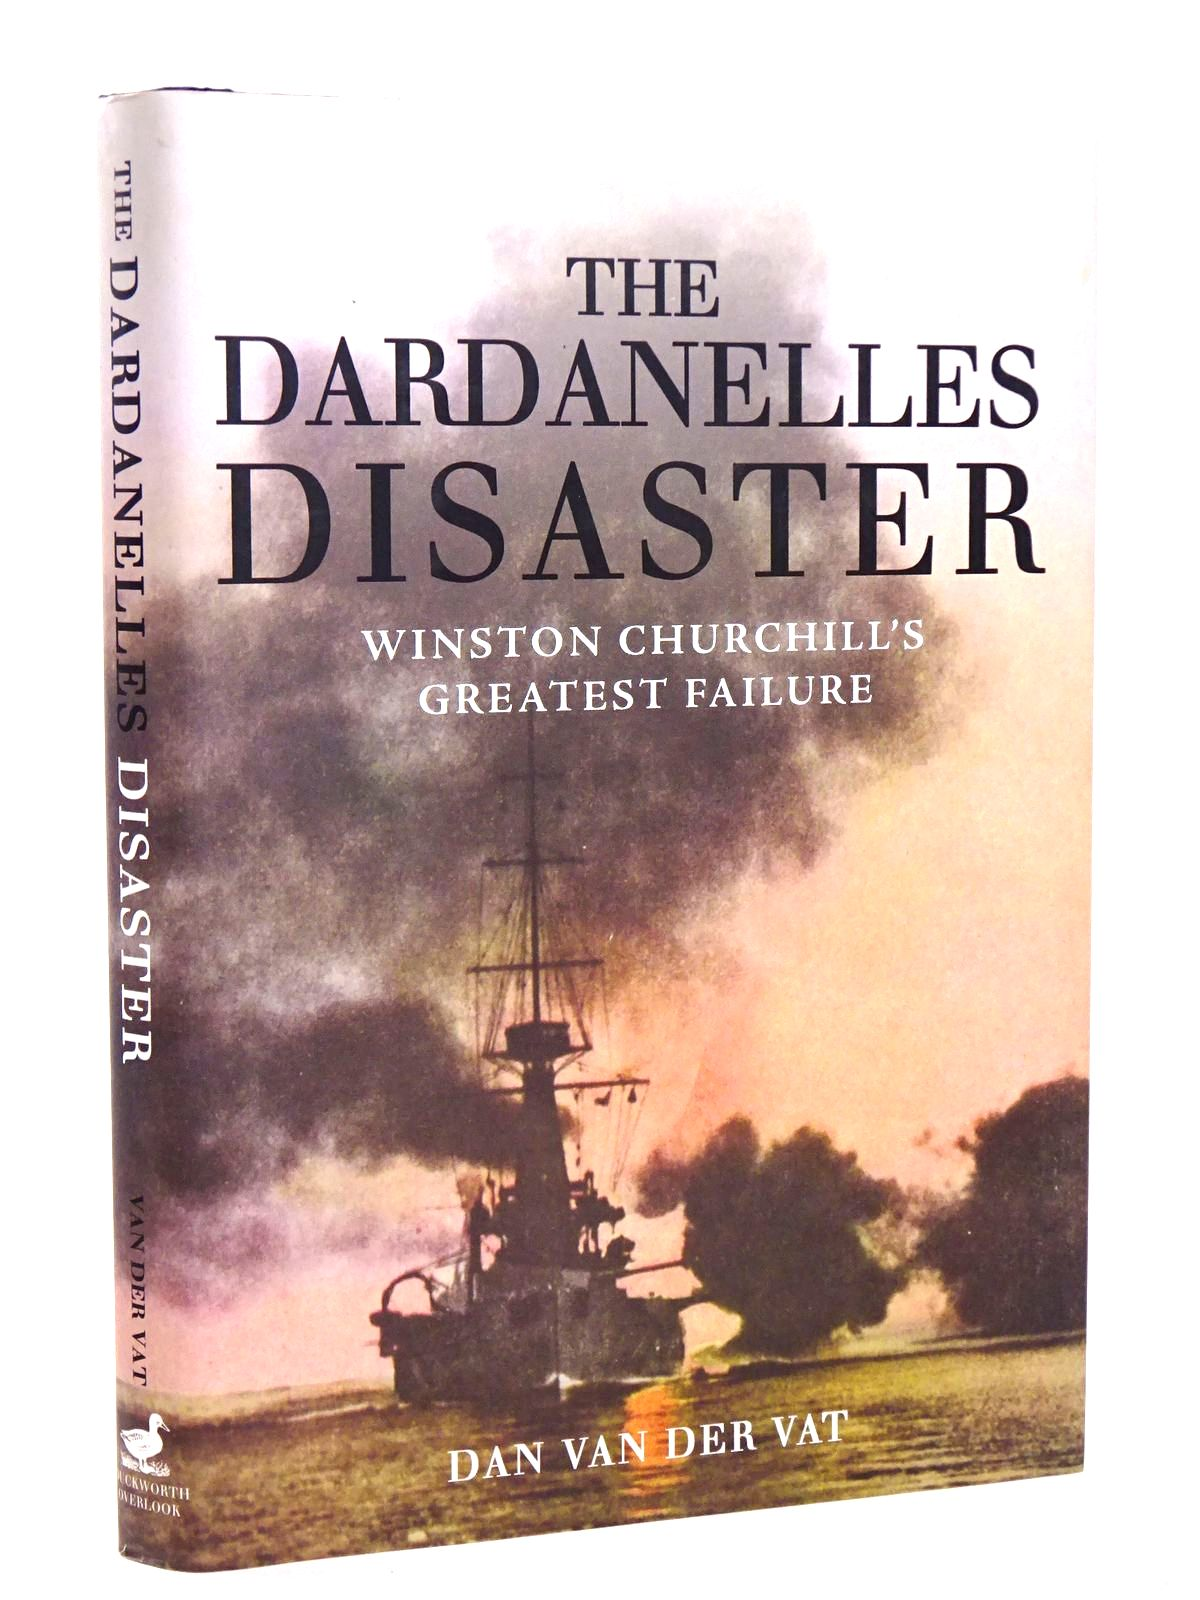 Photo of THE DARDANELLES DISASTER: WINSTON CHURCHILL'S GREATEST FAILURE written by Van Der Vat, Dan published by Duckworth Overlook (STOCK CODE: 1818477)  for sale by Stella & Rose's Books